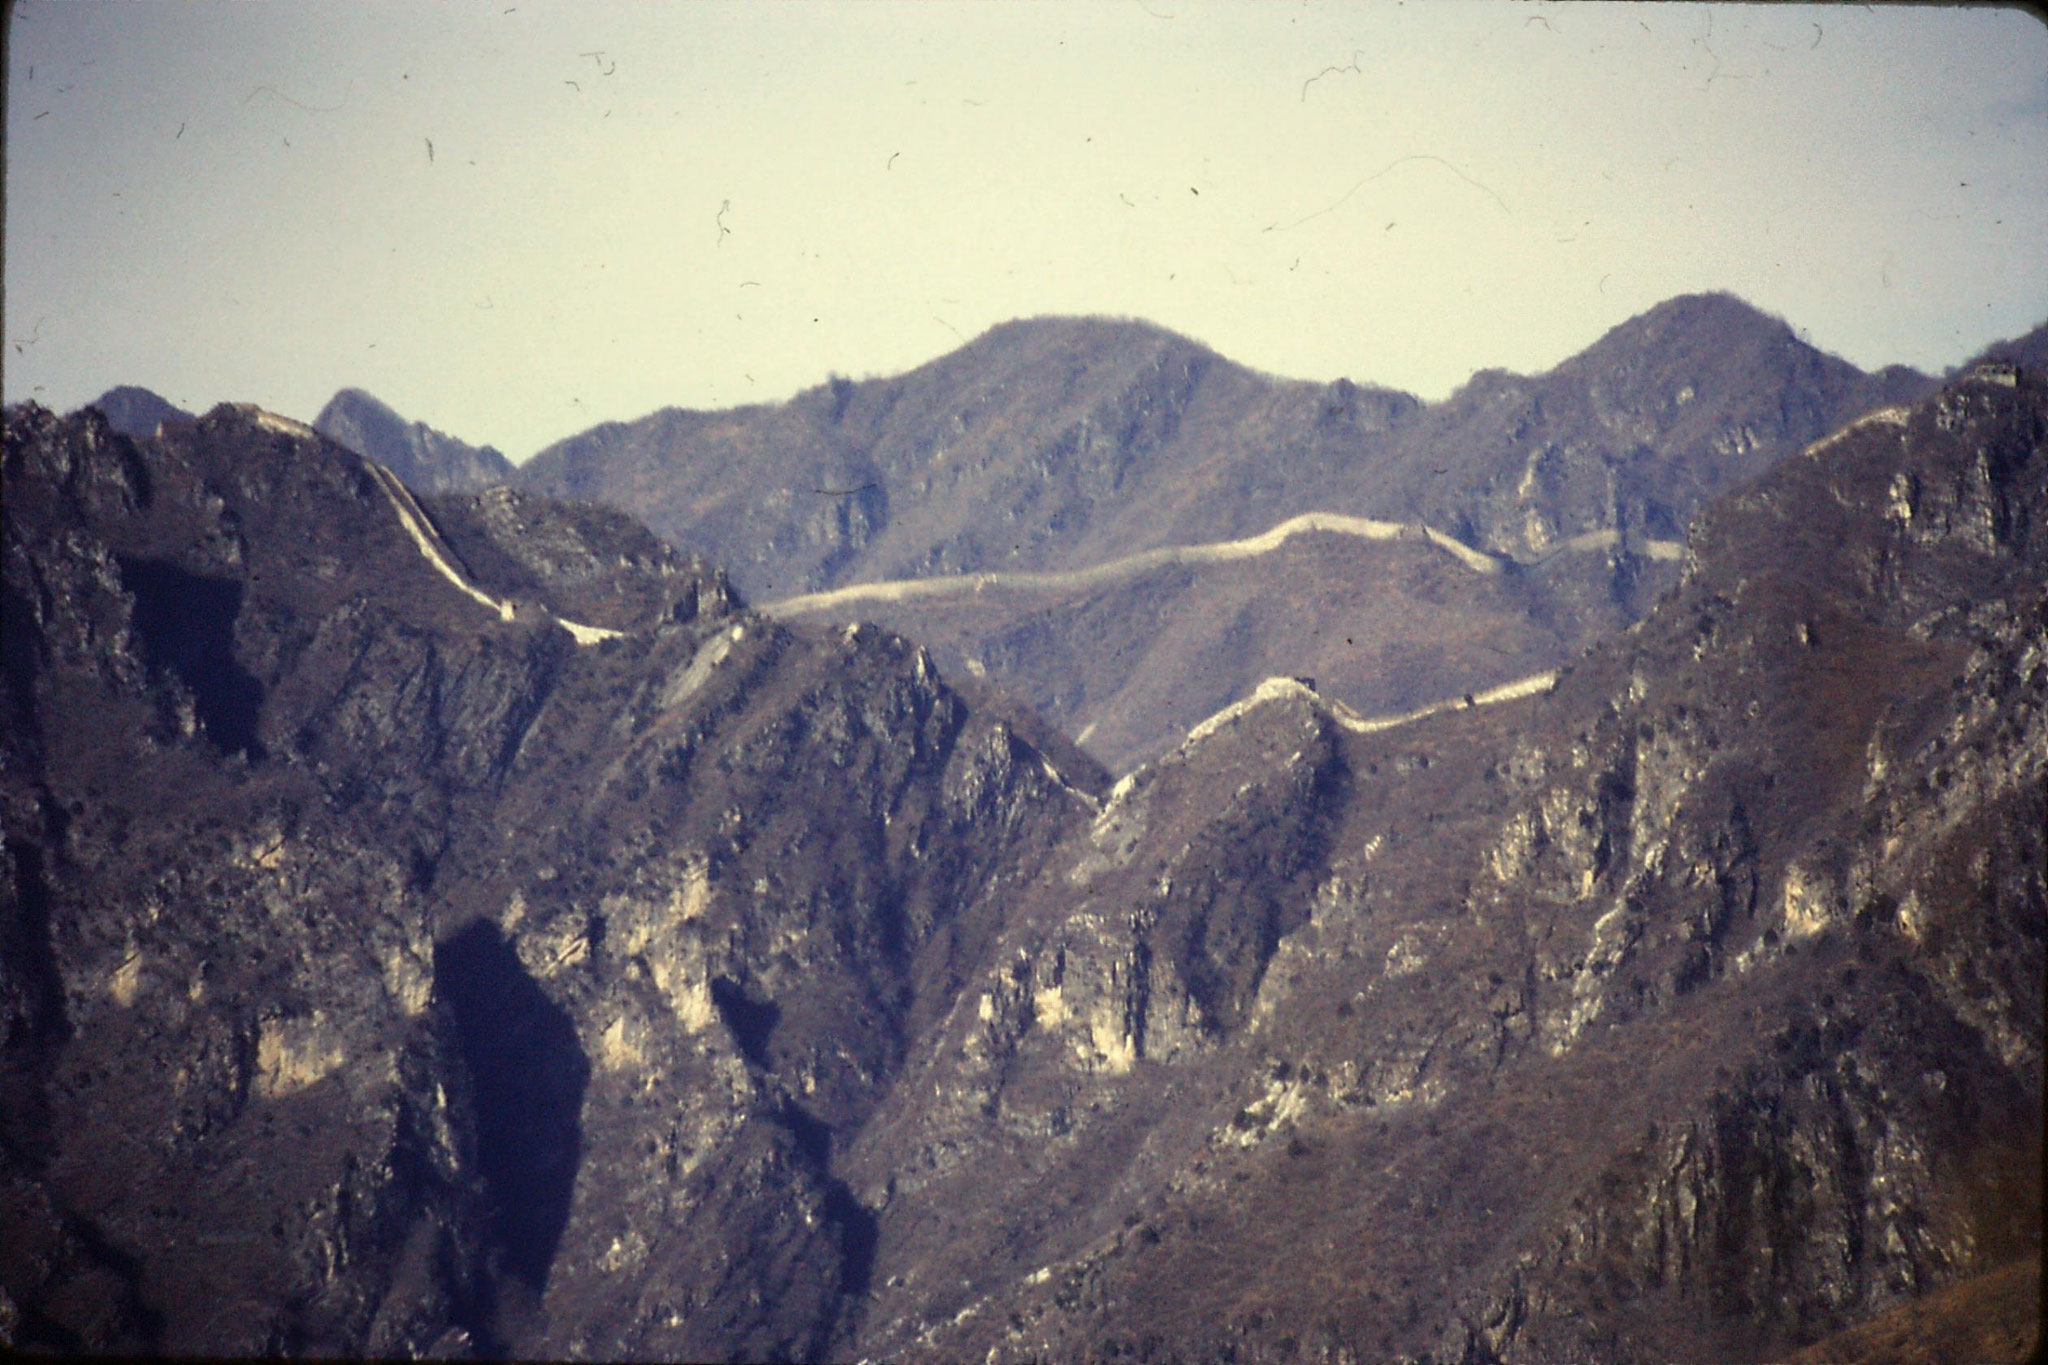 13/11/1988: 18: Great Wall at Mutianyu